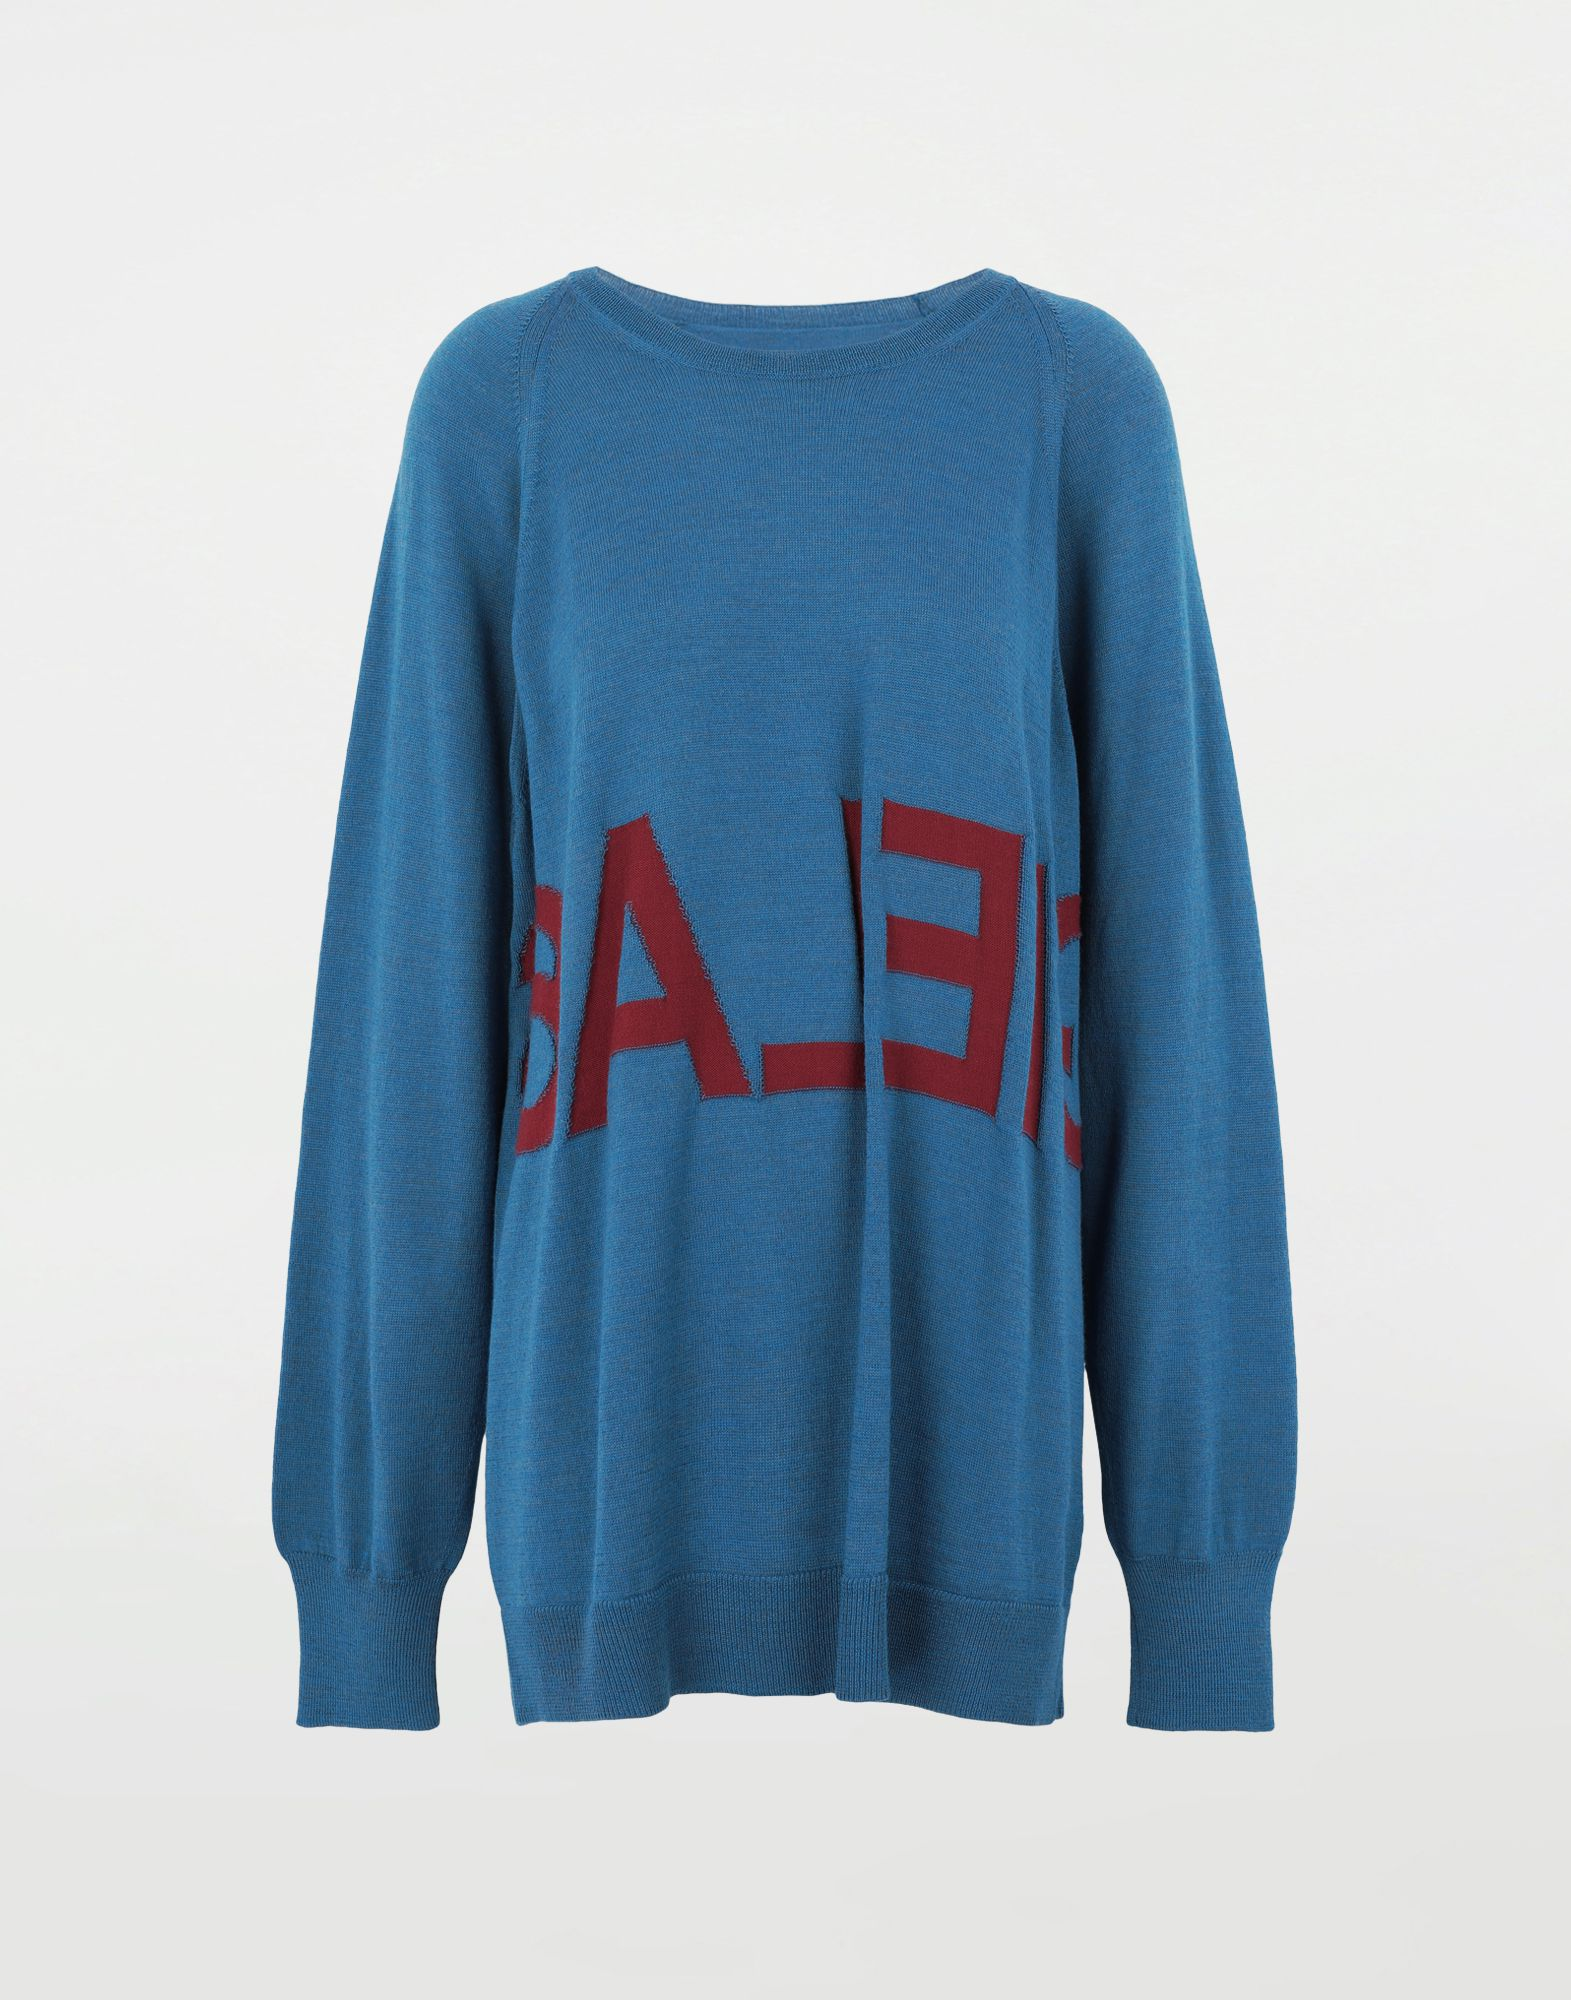 MM6 MAISON MARGIELA Reversed logo sweater Crewneck sweater Woman f